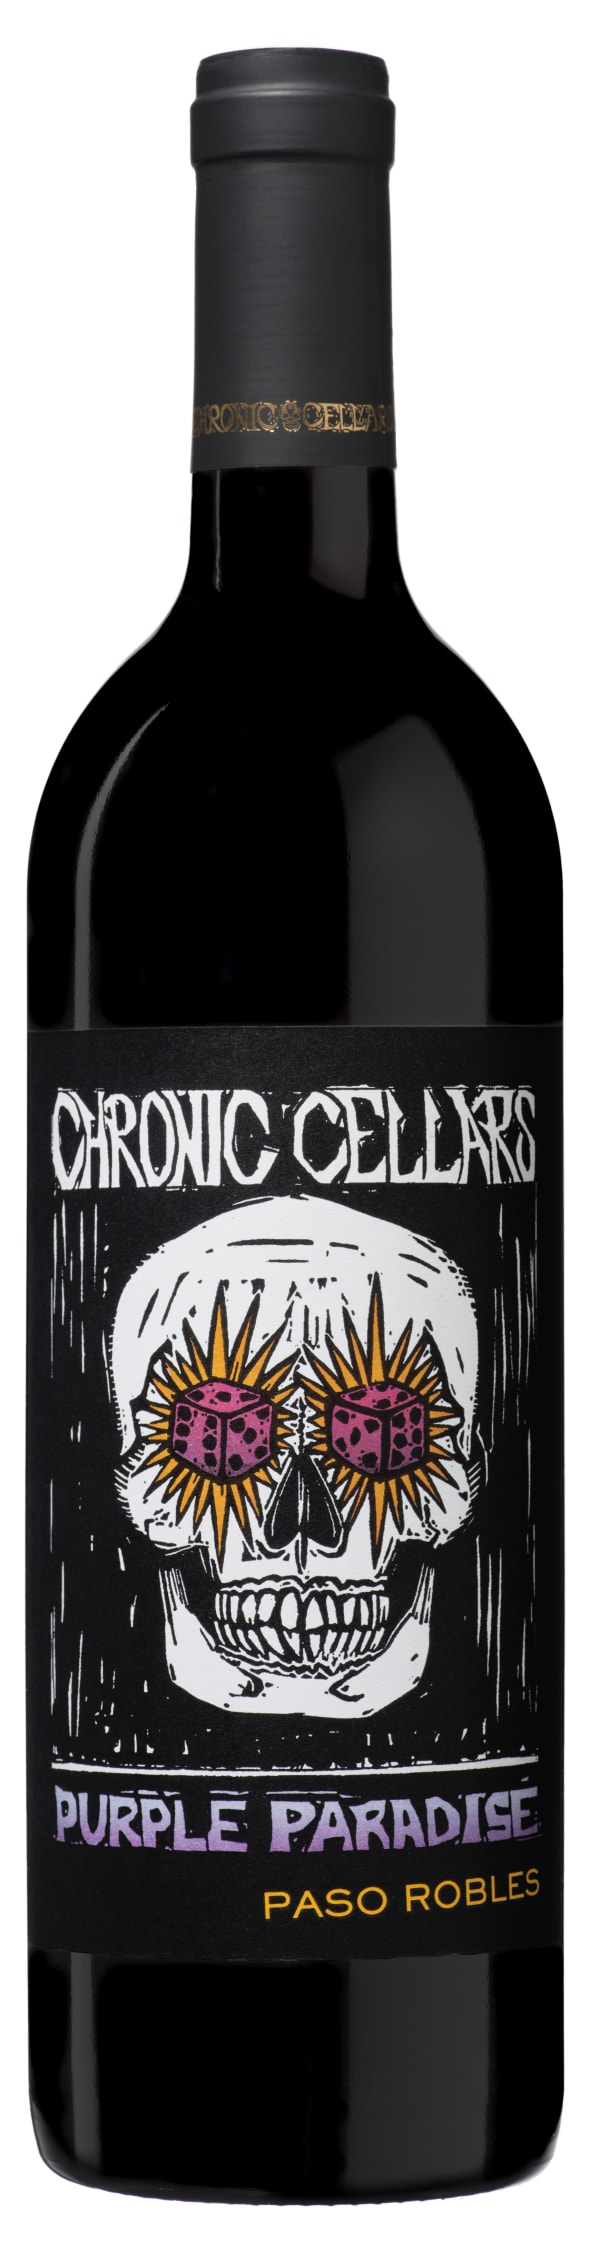 Chronic Cellars Purple Paradise 2013